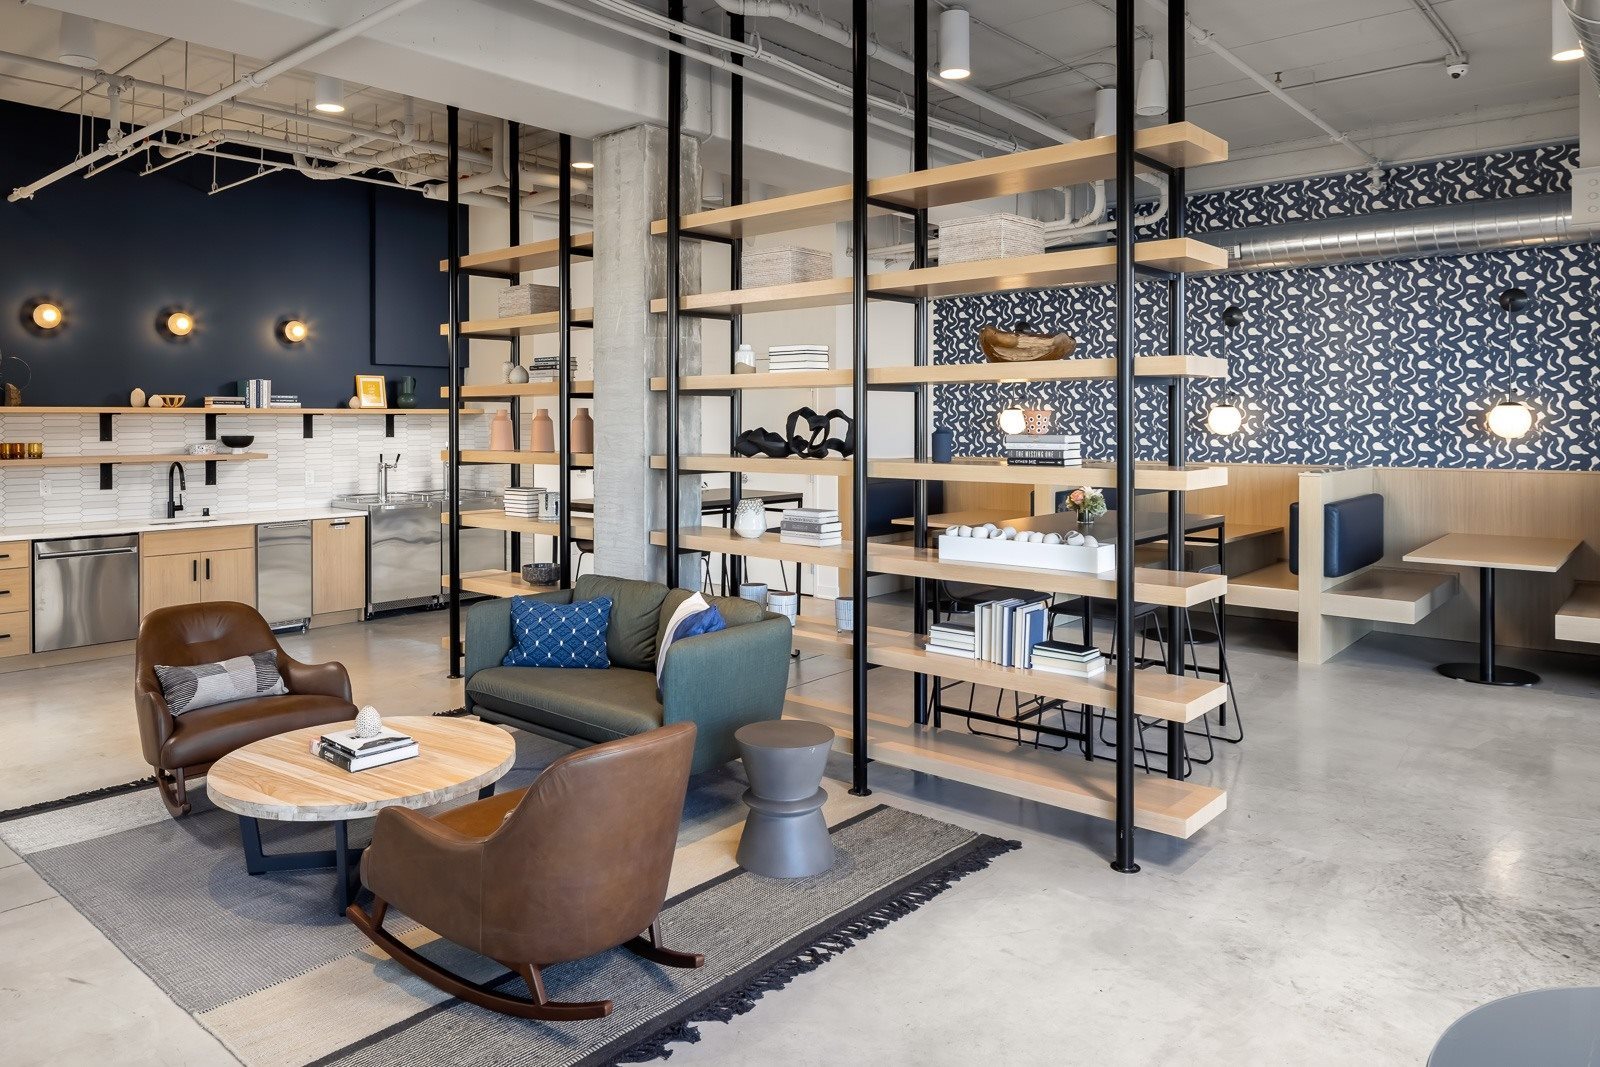 Social lobby with work from home seating and rotating taps